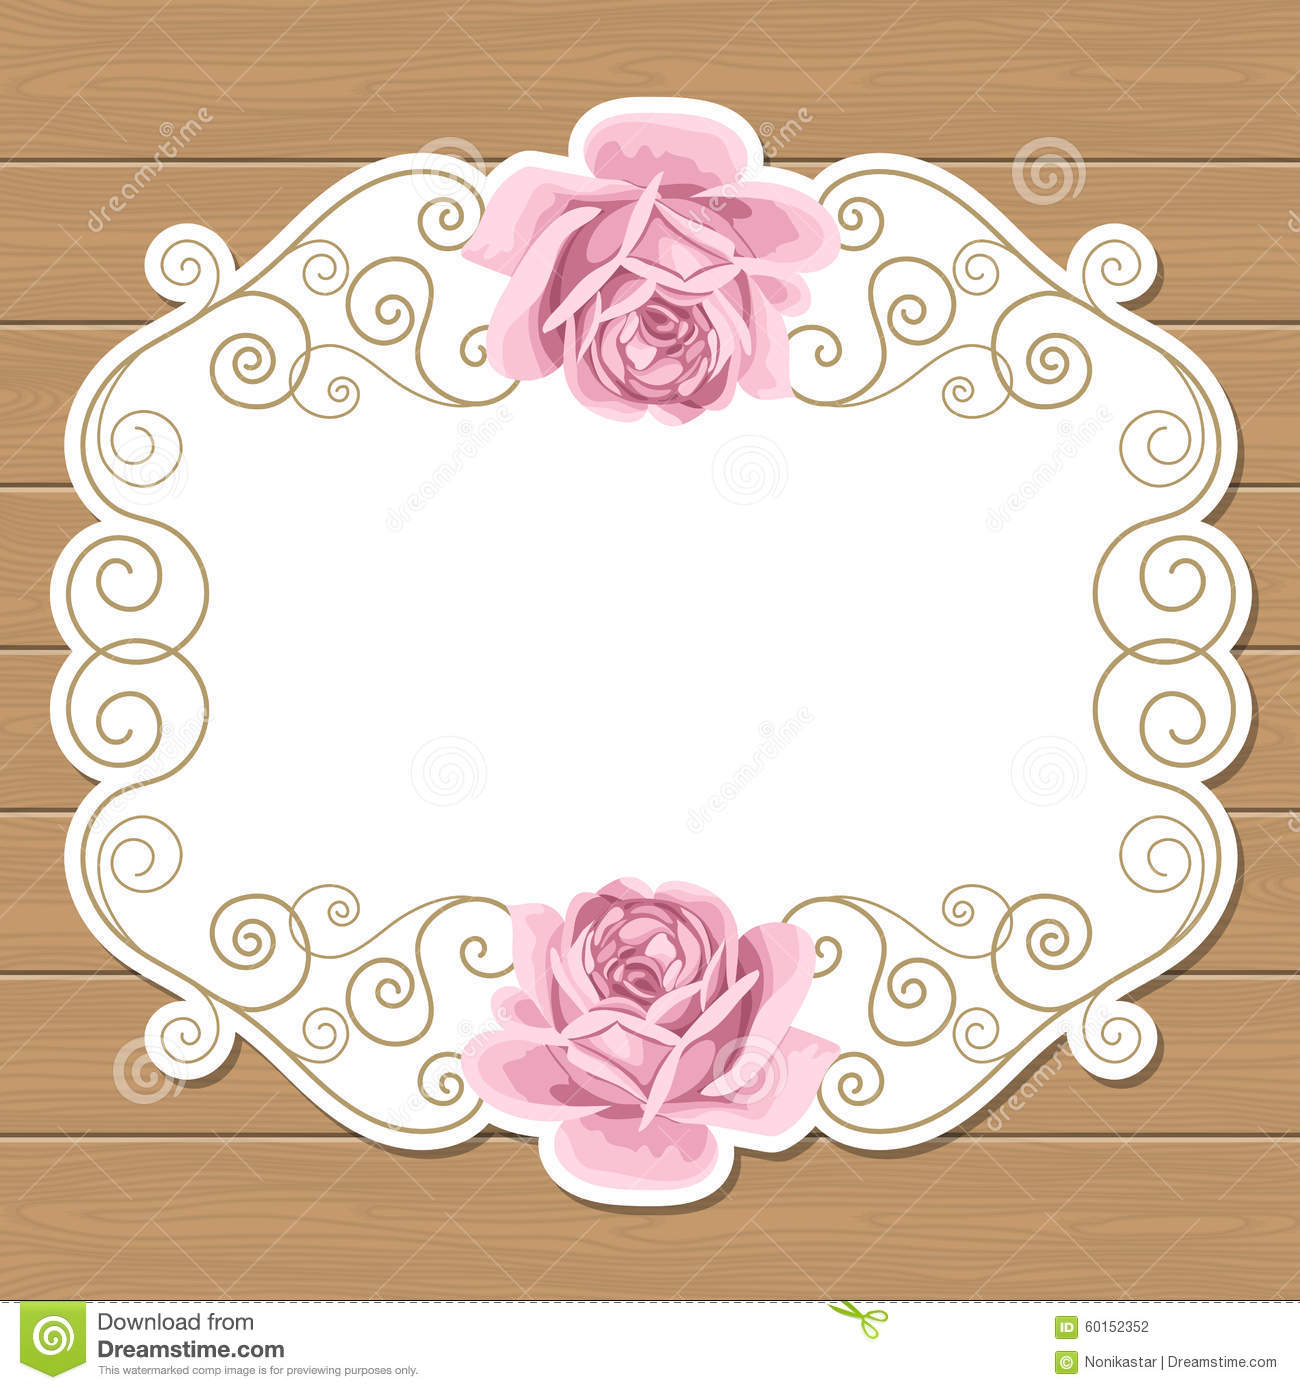 Wood Background With Hand Draw Roses And Gold Curly Oval Frame Shabby Chic Vector Illustration Invitation Greeting Card Template Place For Text